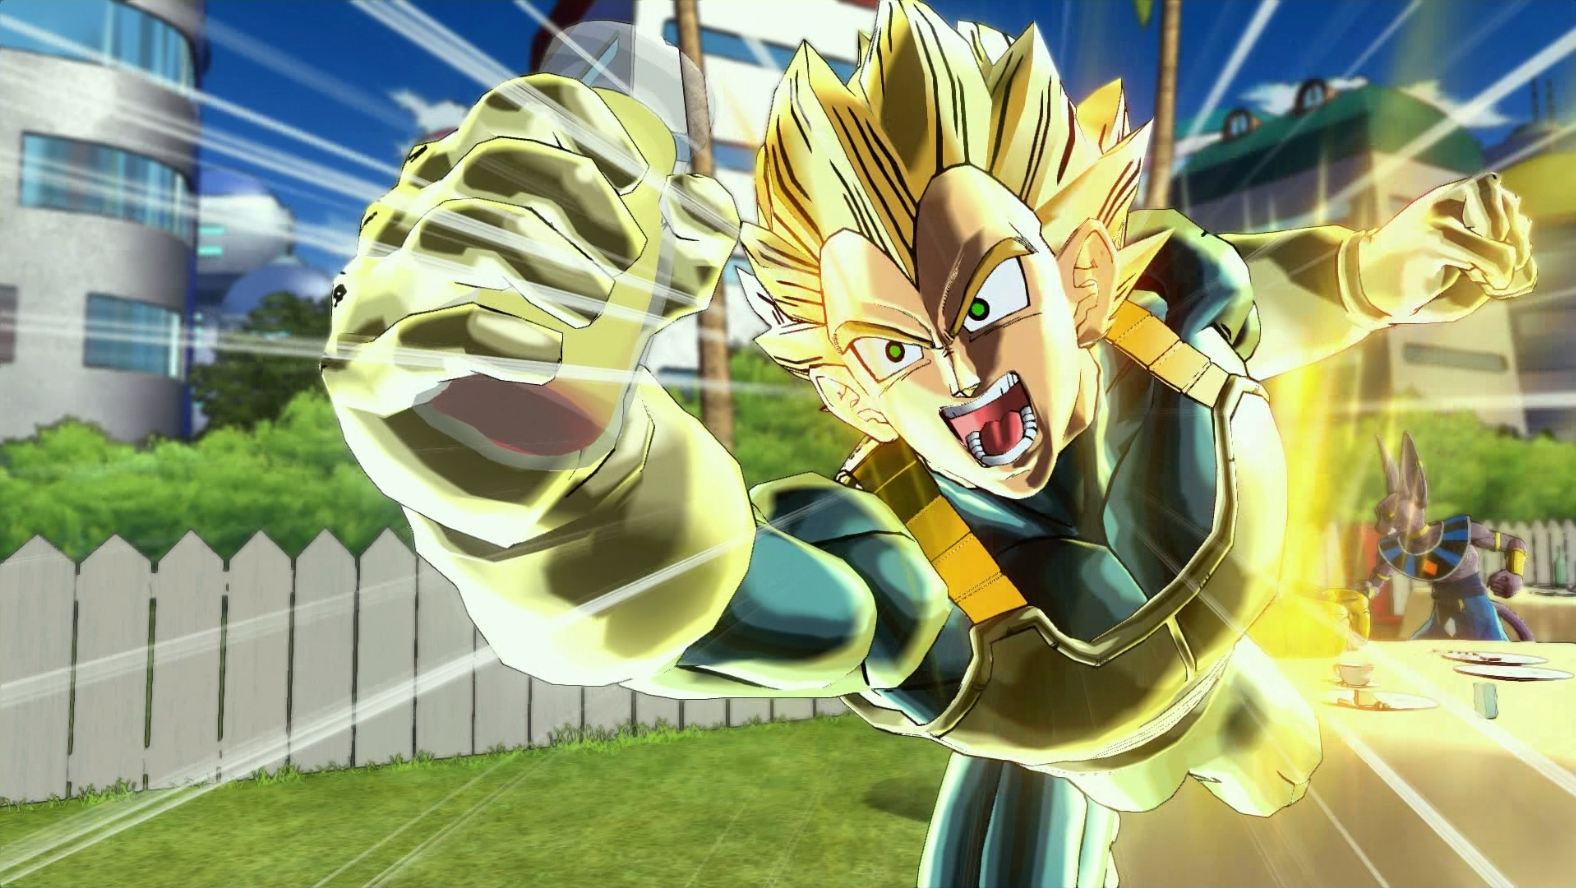 Dragon Ball Xenoverse Jan 2015 Screenshots 7